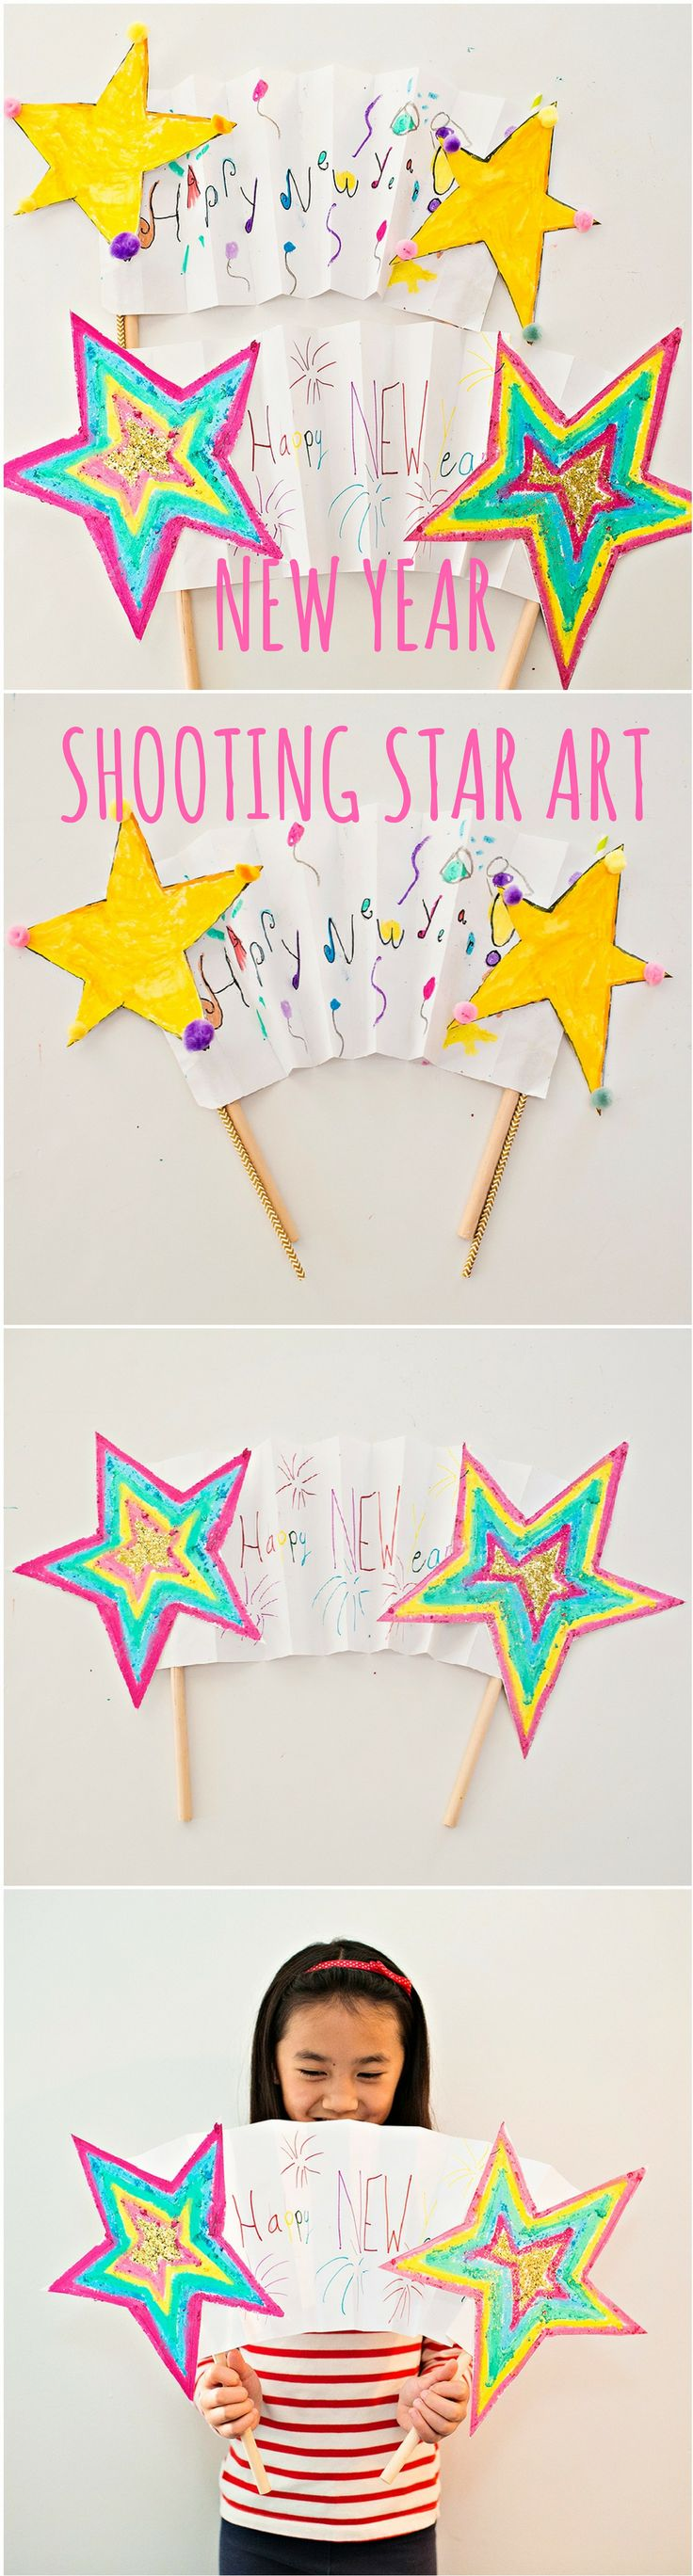 New Year Shooting Star Banner Art for Kids #newyearcrafts